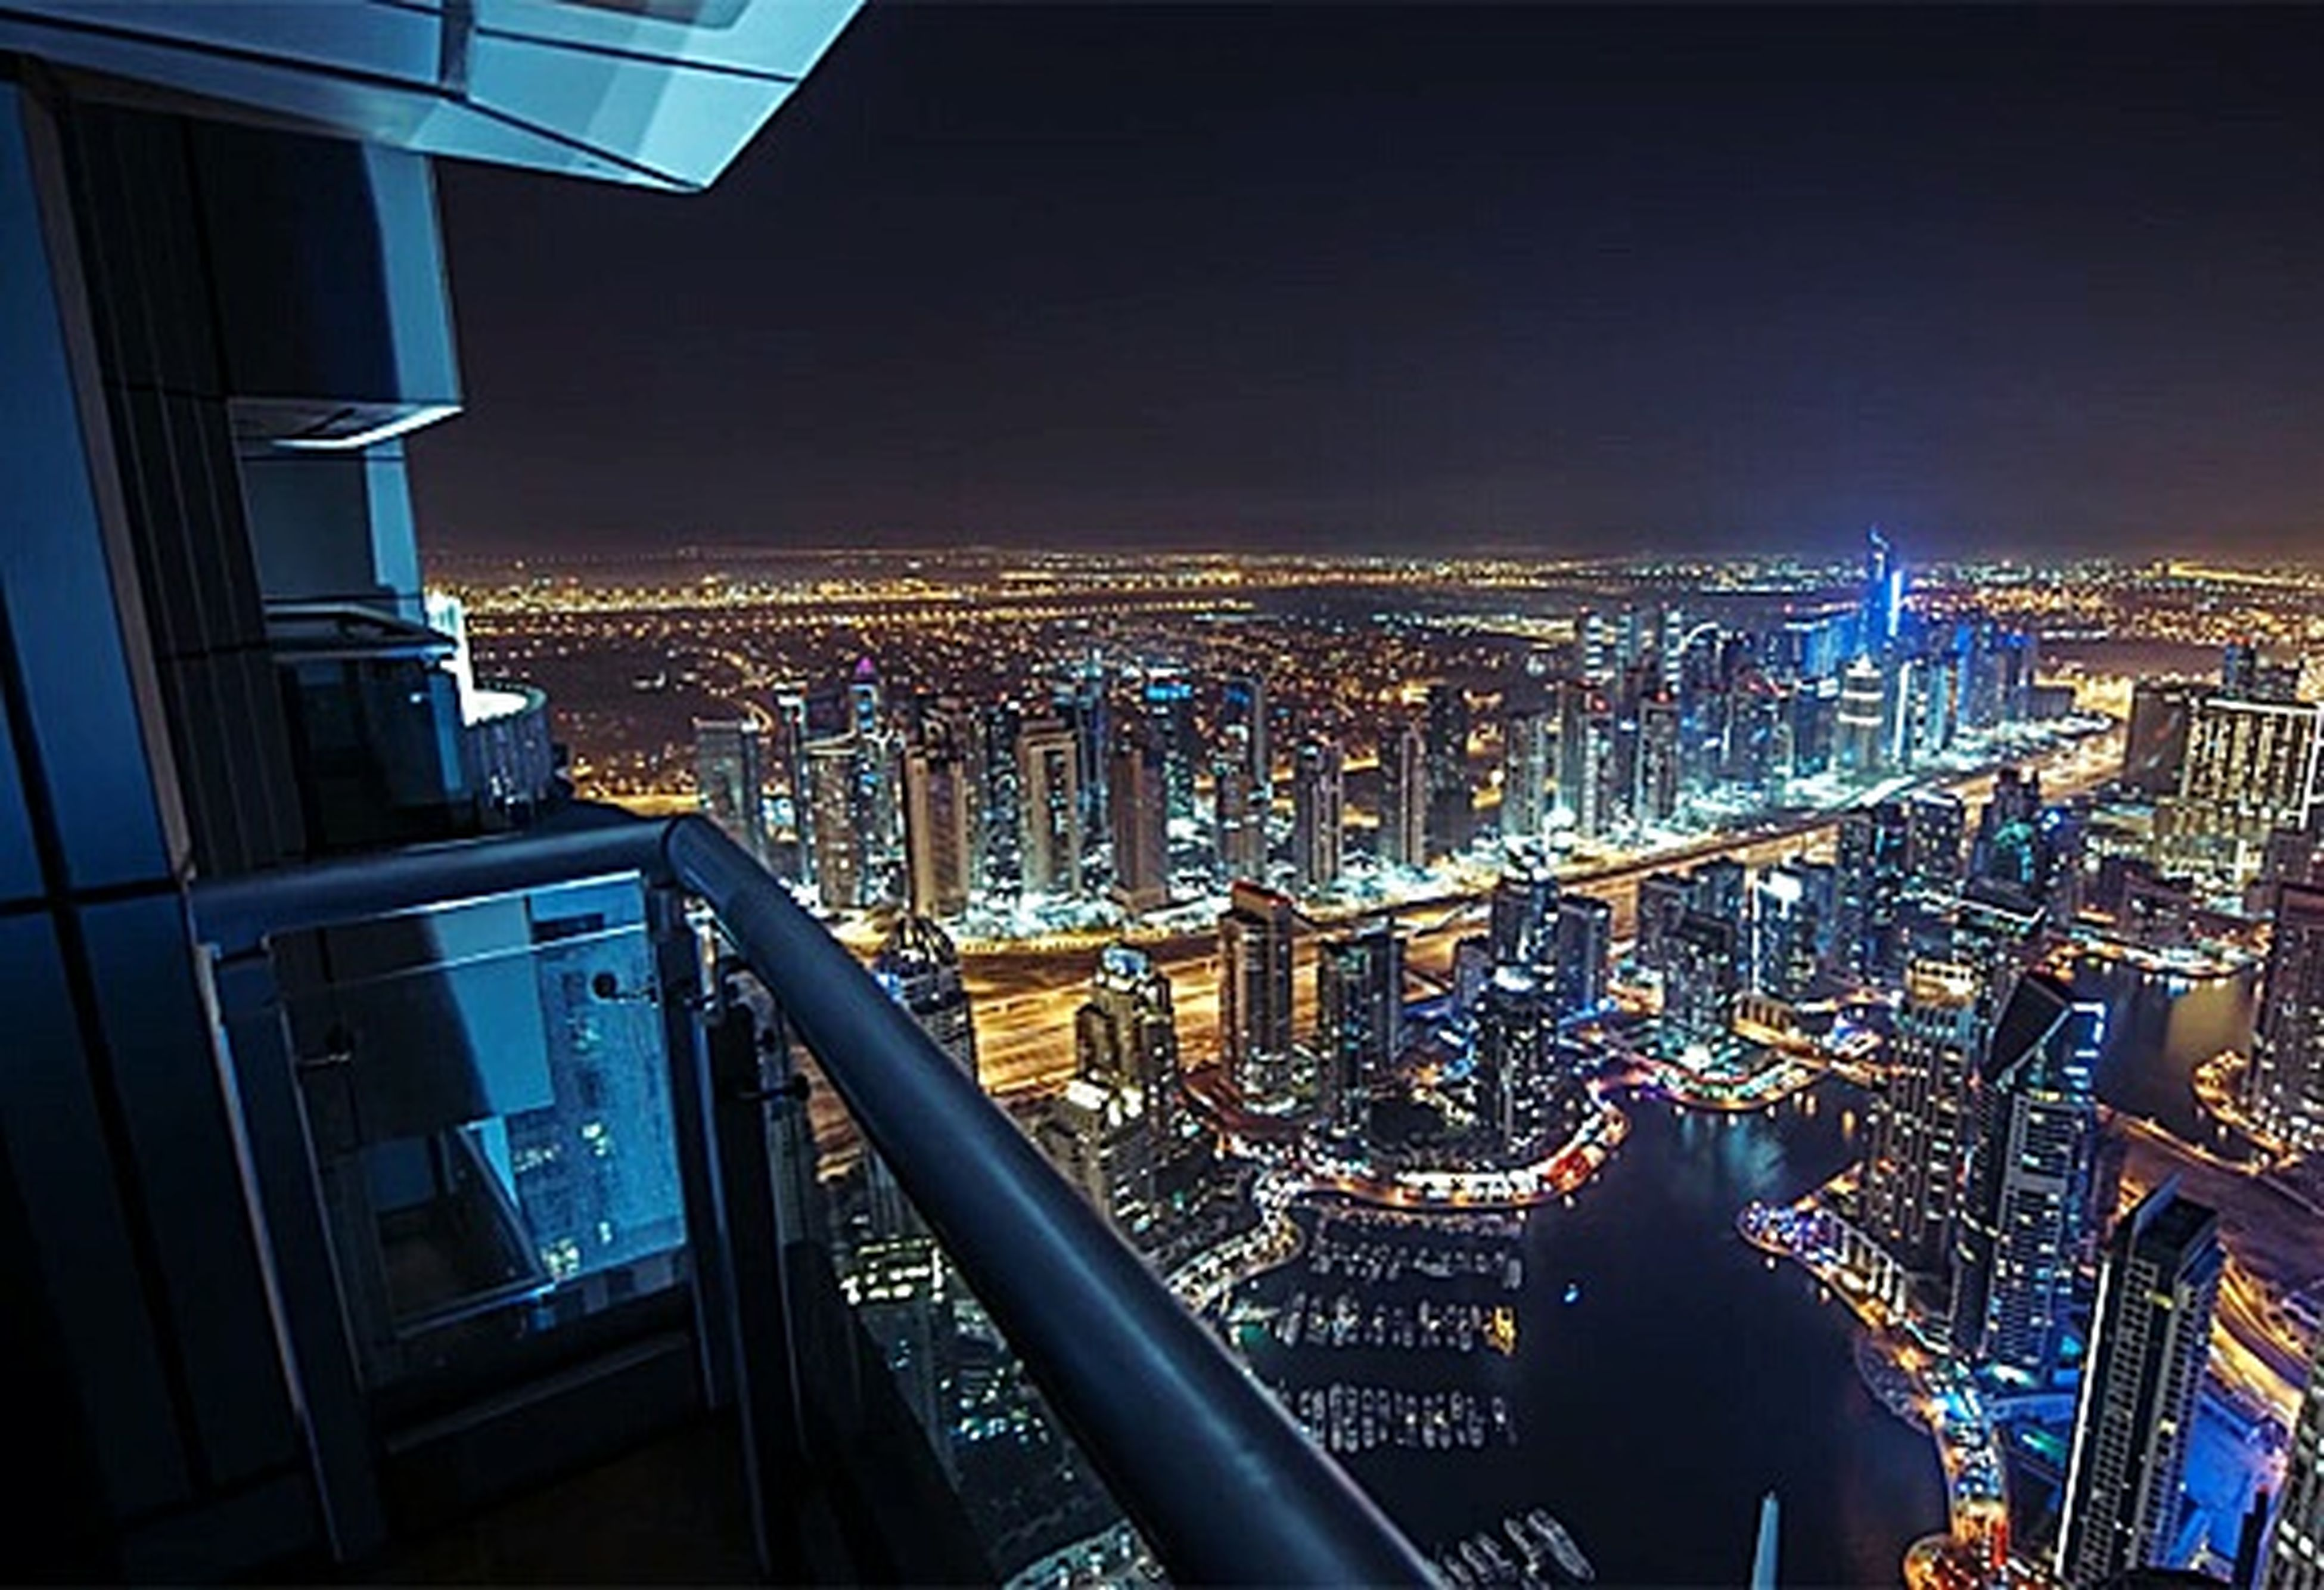 illuminated, architecture, built structure, cityscape, city, building exterior, night, modern, clear sky, sky, development, blue, dark, city life, capital cities, office building, horizon, no people, human settlement, horizon over land, flying, financial district, residential district